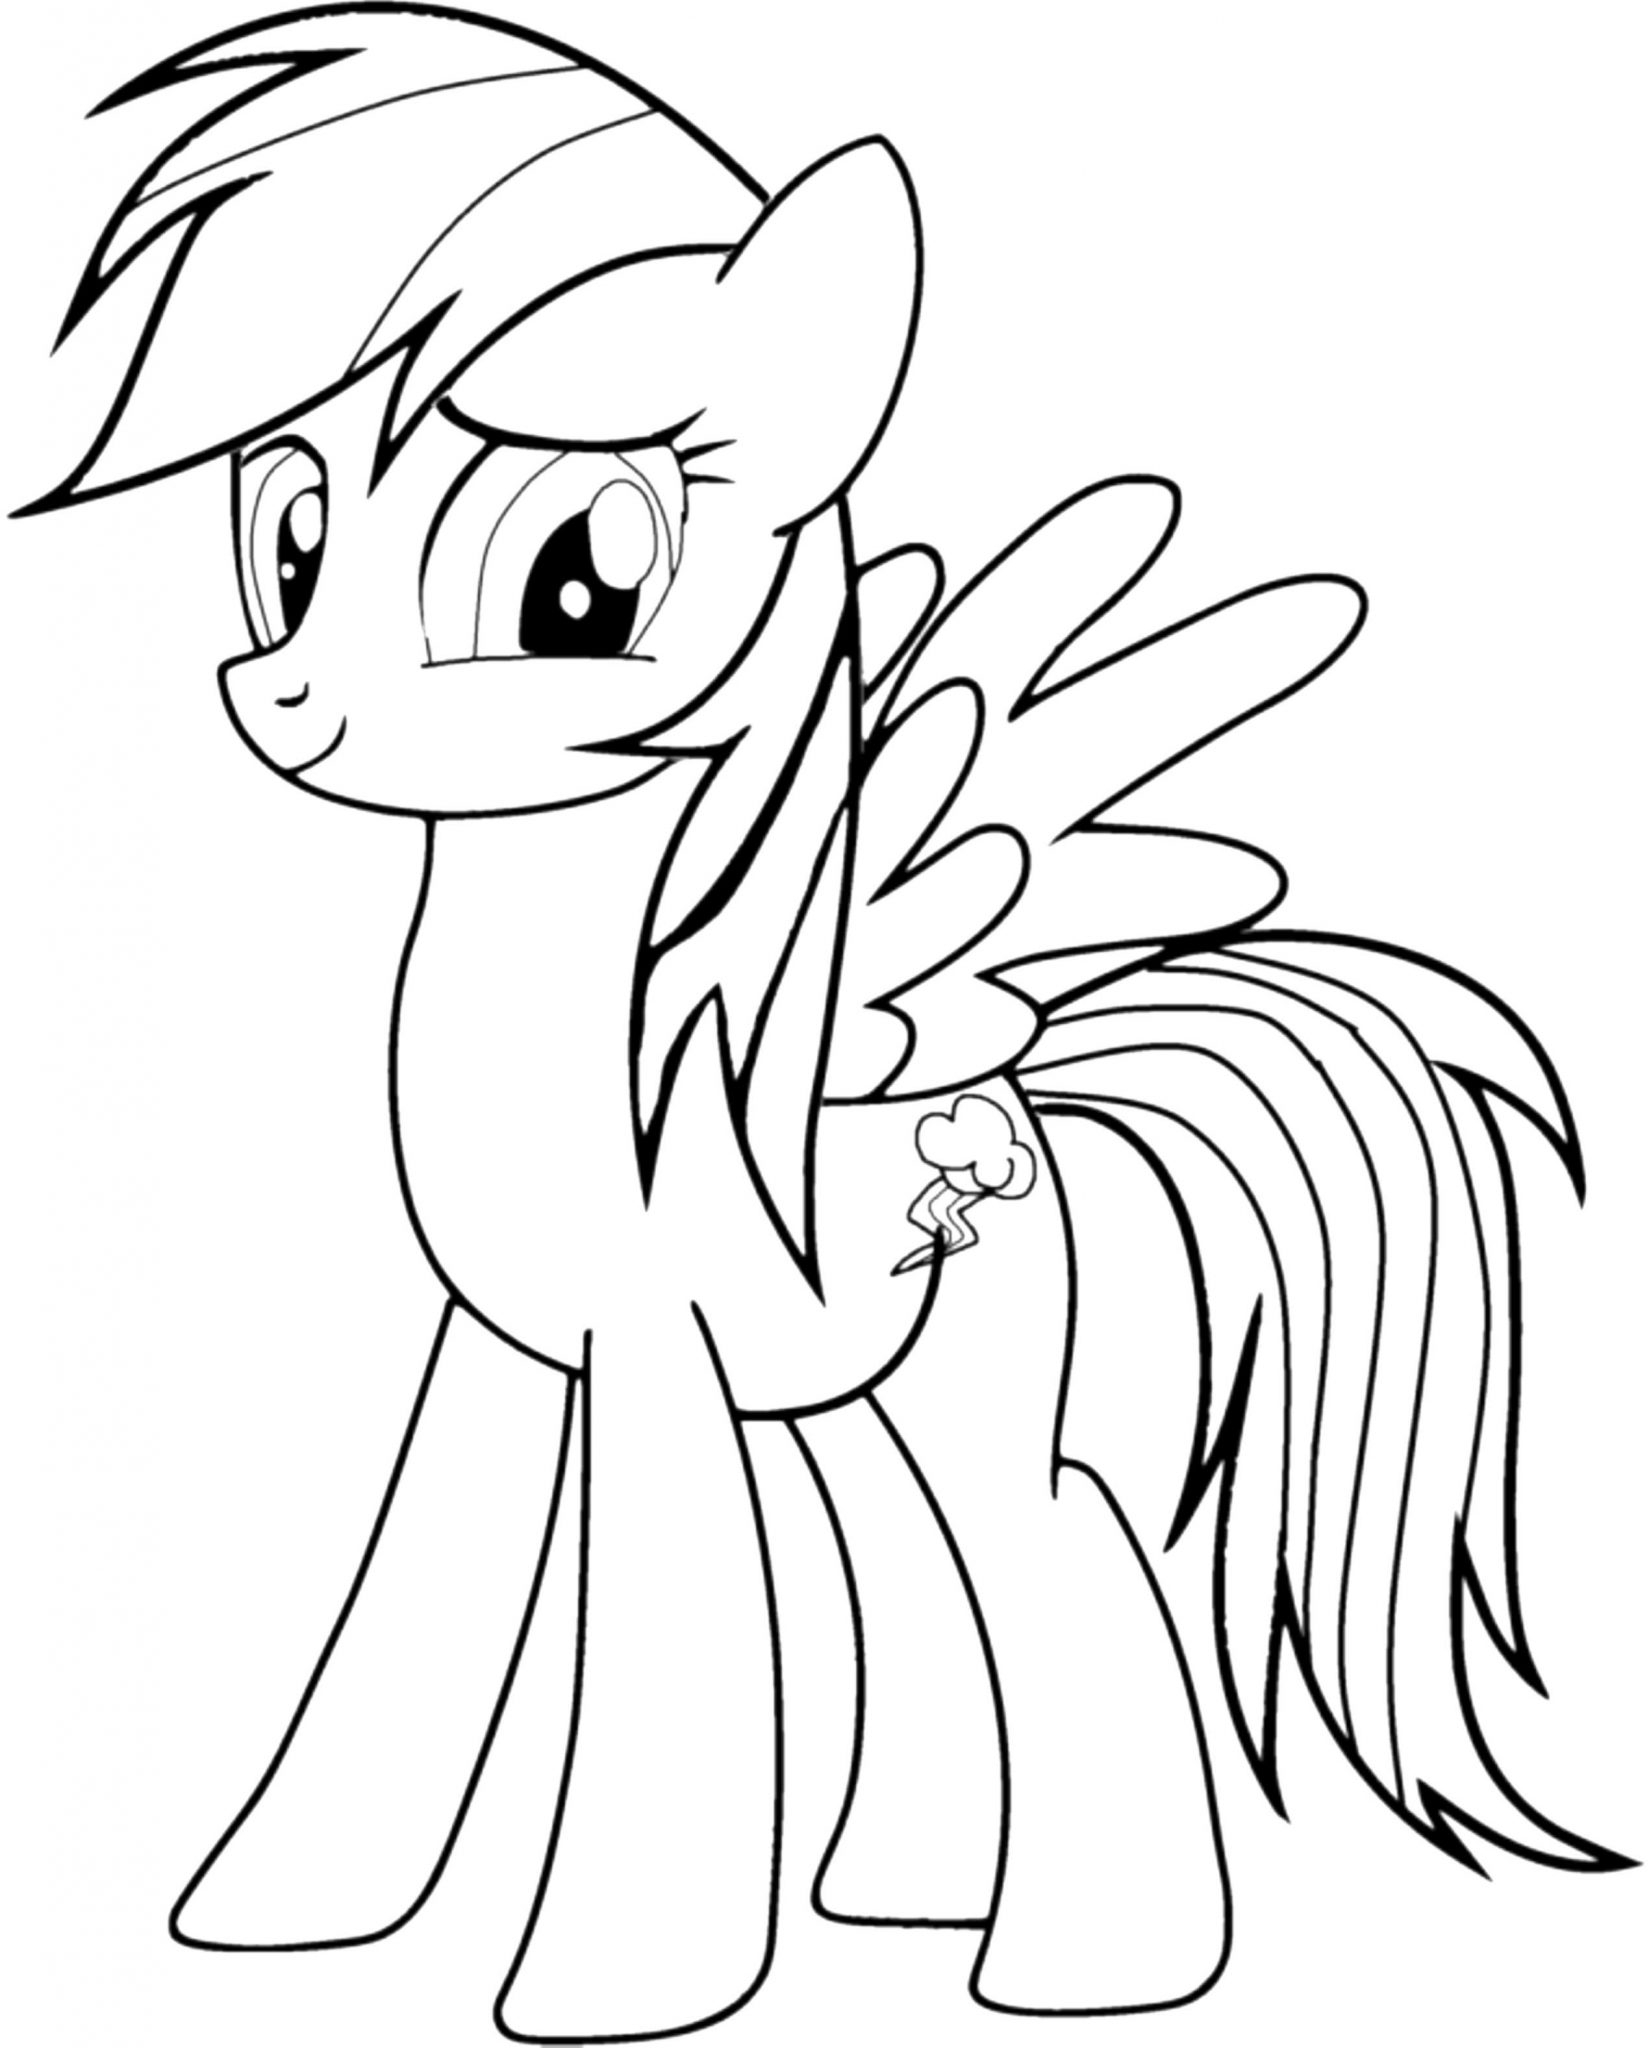 rainbow dash coloring pages free rainbow dash coloring pages best coloring pages for kids free dash pages rainbow coloring